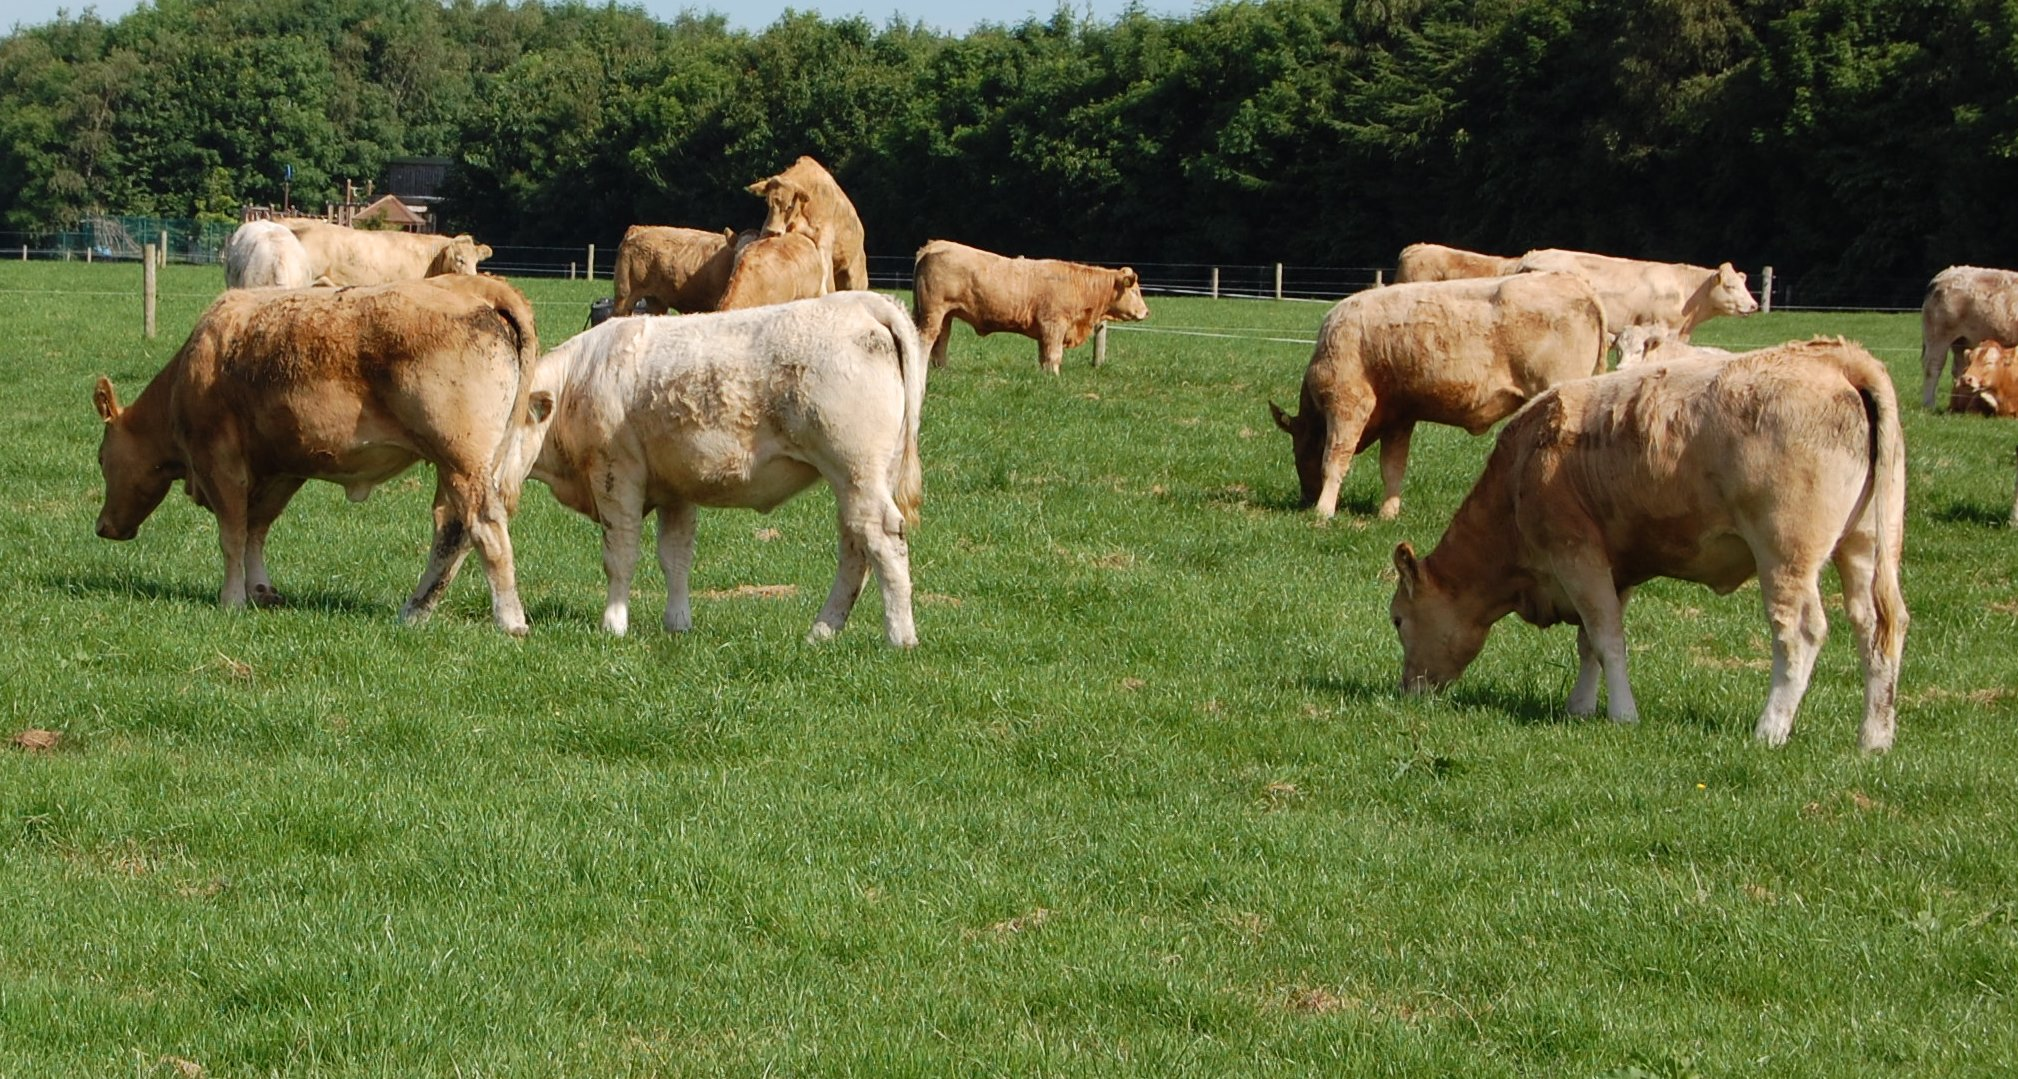 Cattle grazing at Teagasc Grange (3)